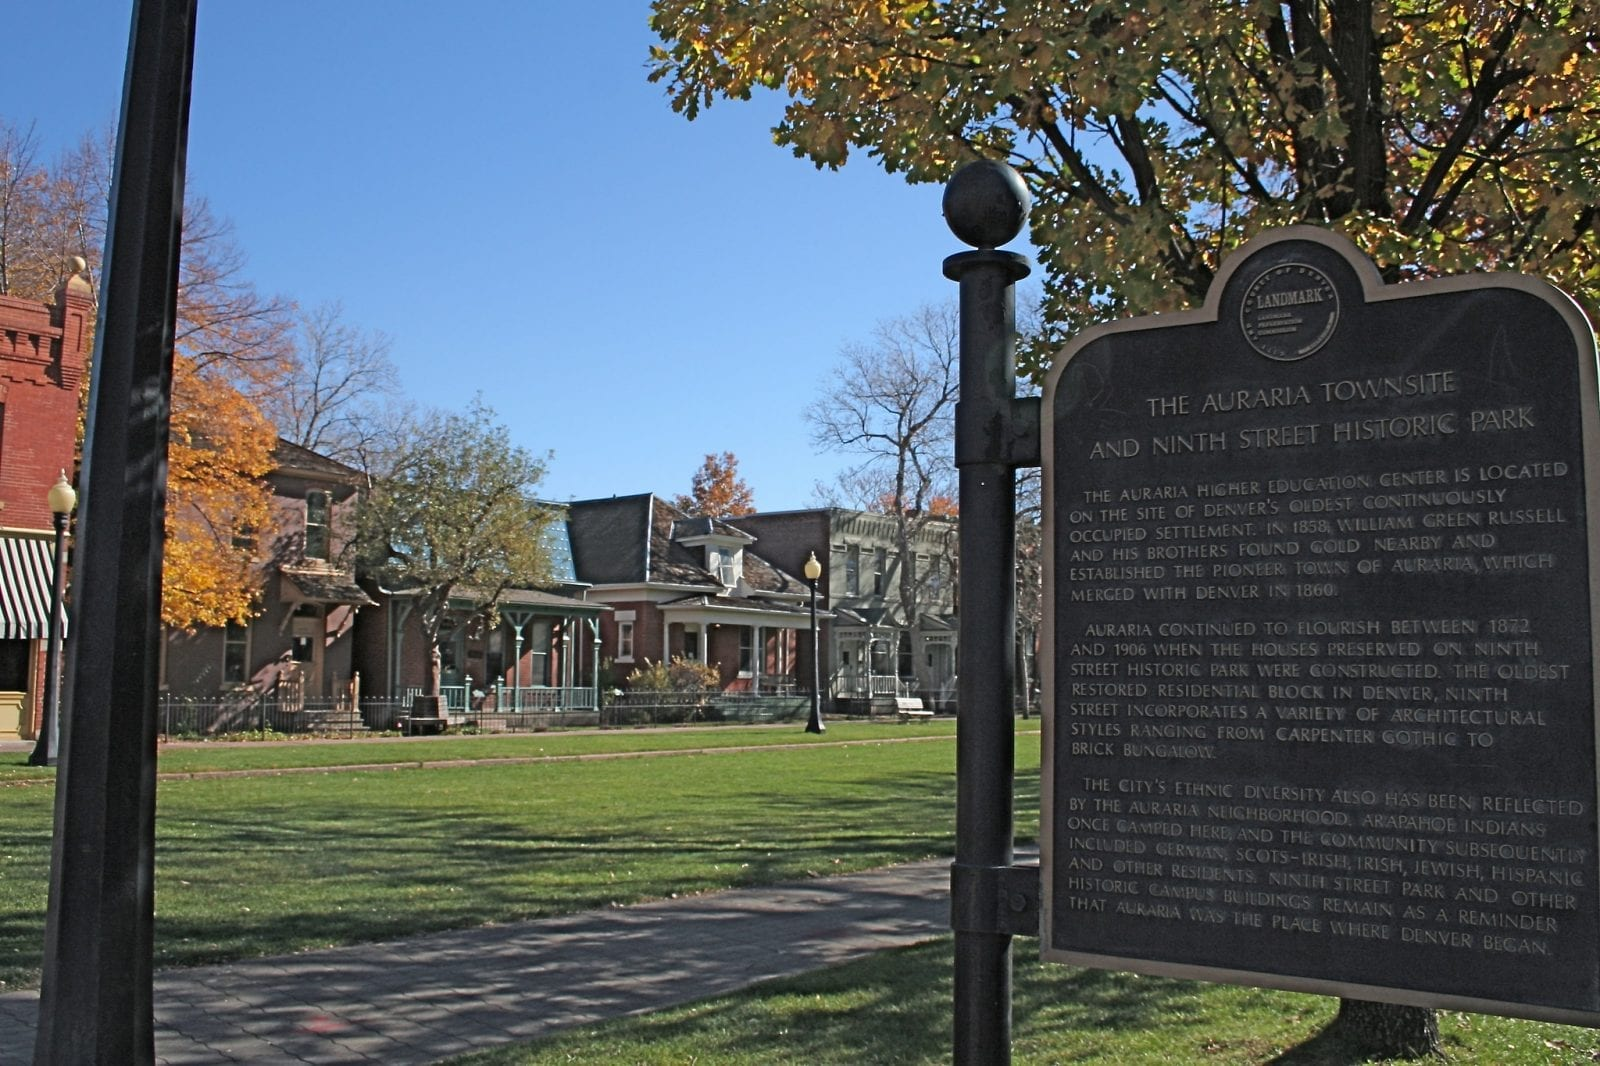 Image of the sign explaining the history of the Ninth Street Historic Park in Denver, Colorado